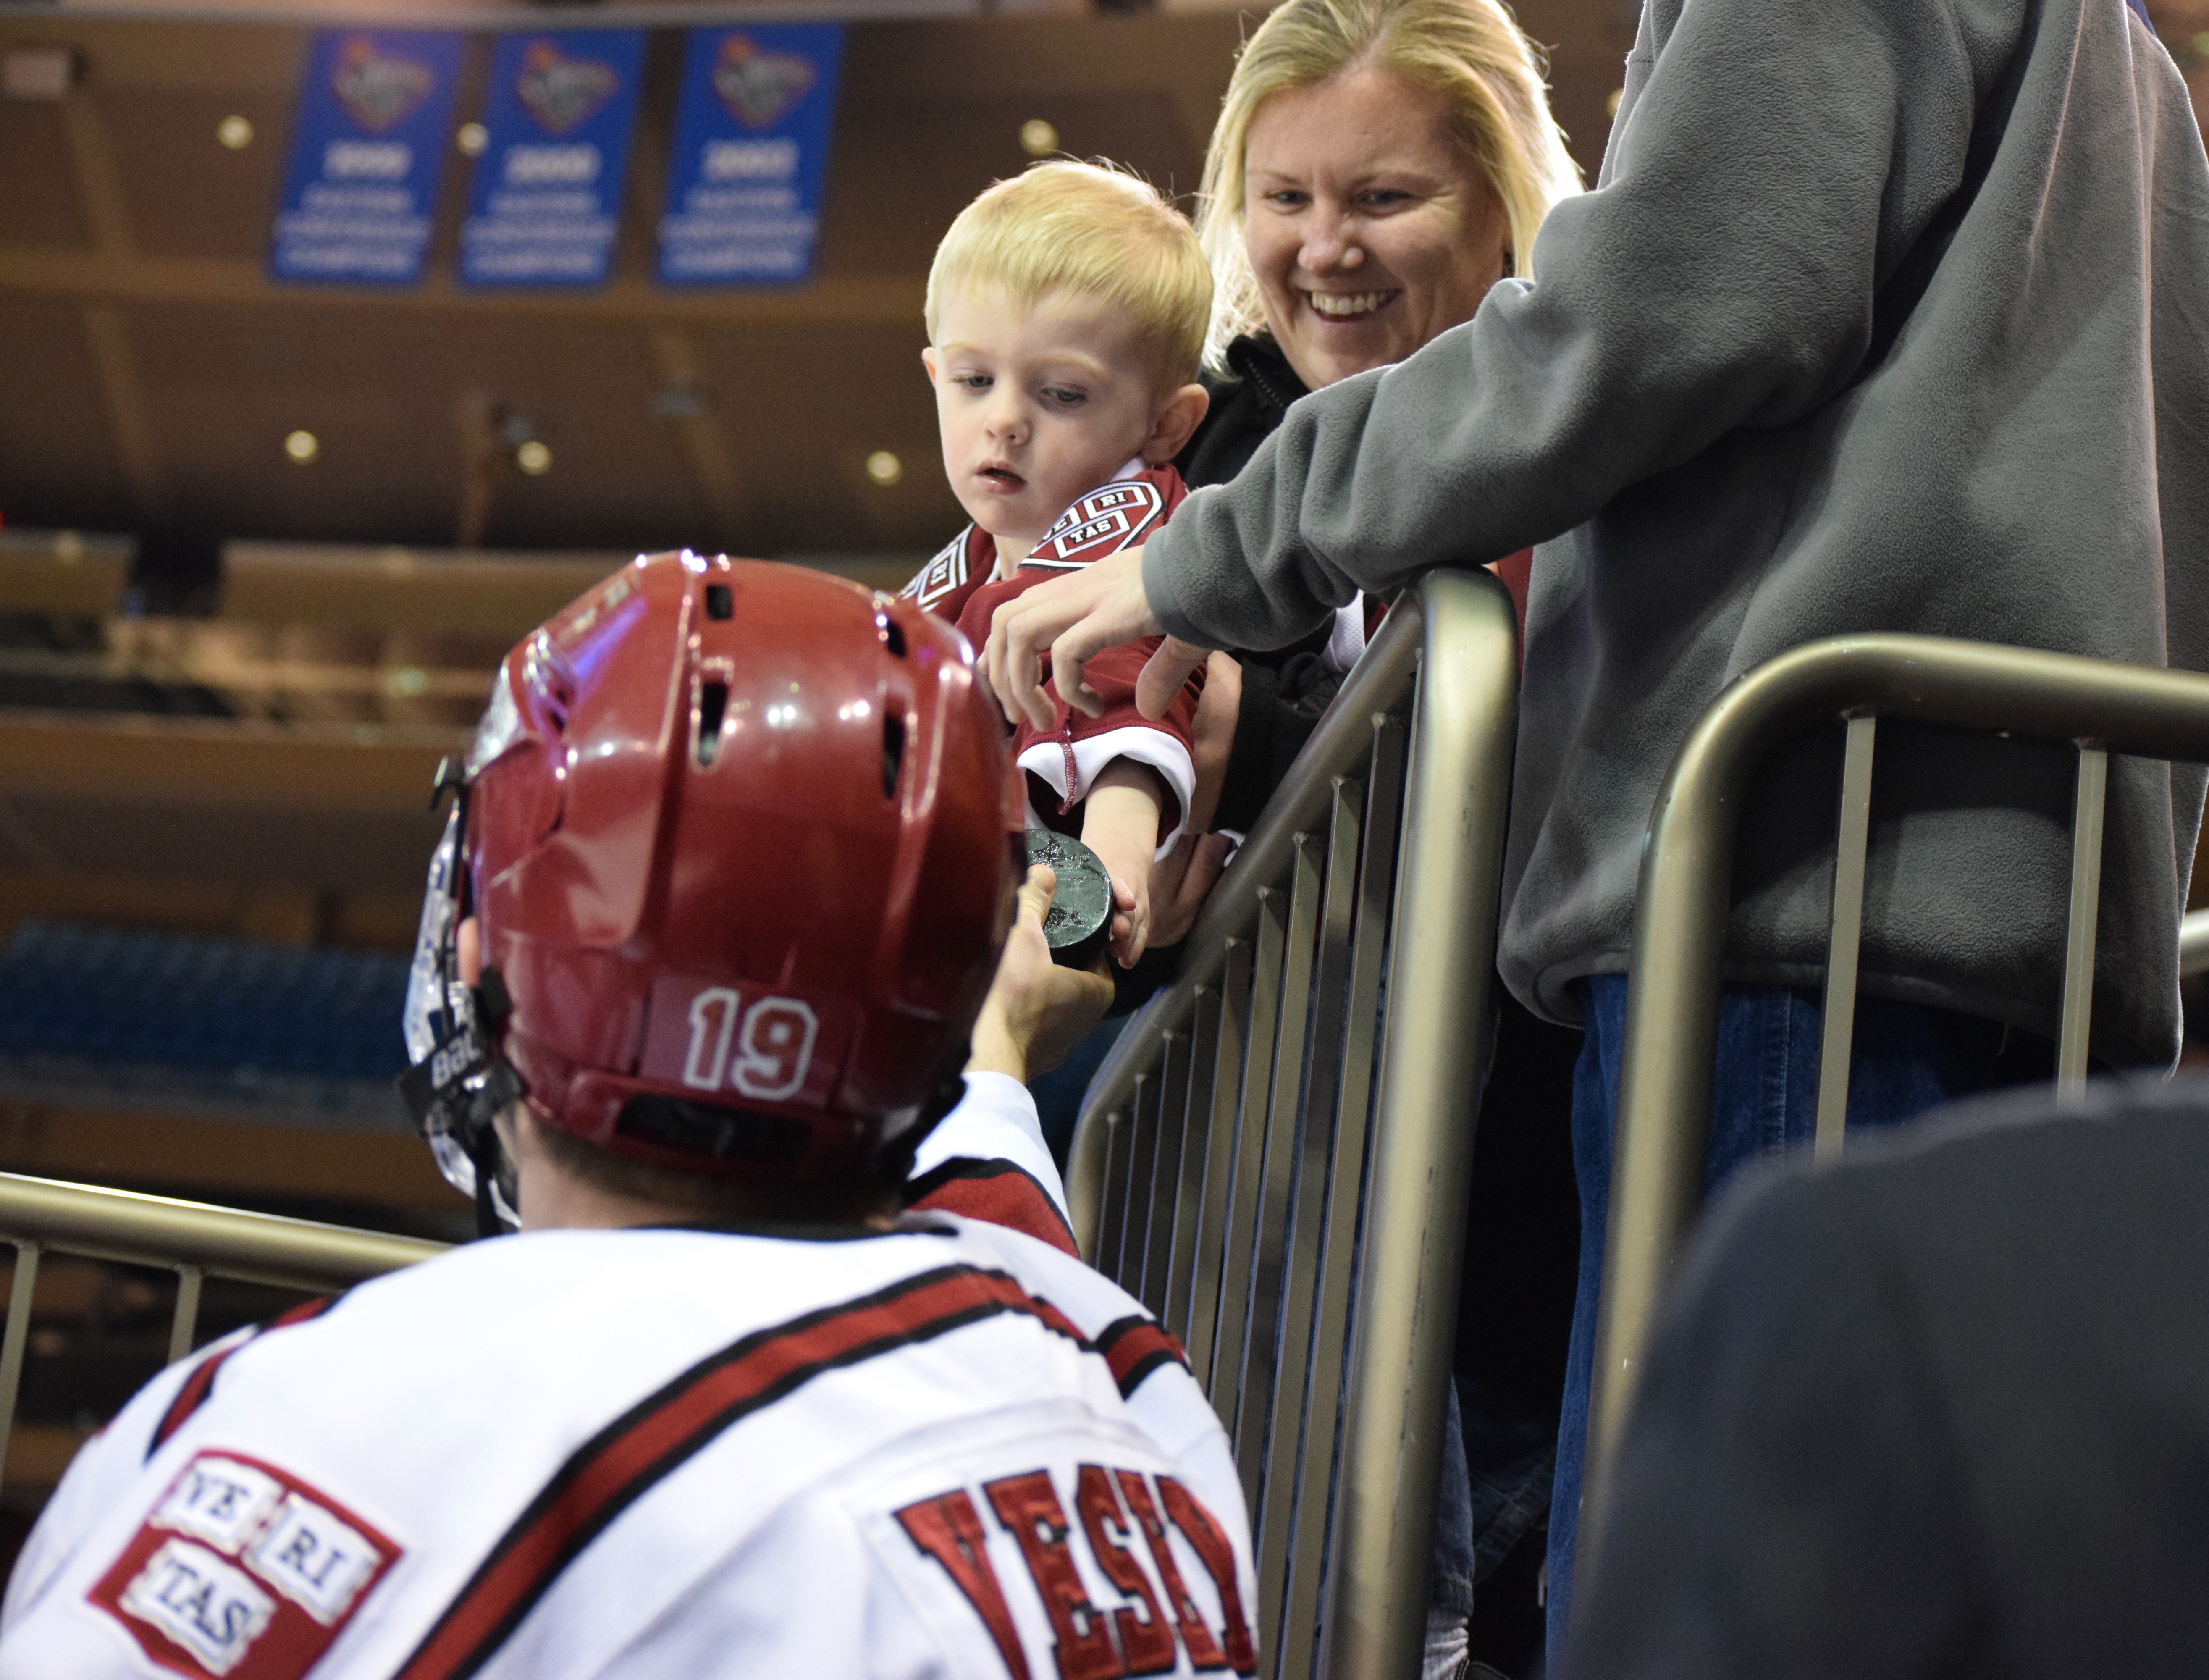 Jordan Novack|Quinnipiac Chronicle Jimmy Vesey makes a young Harvard fan's night